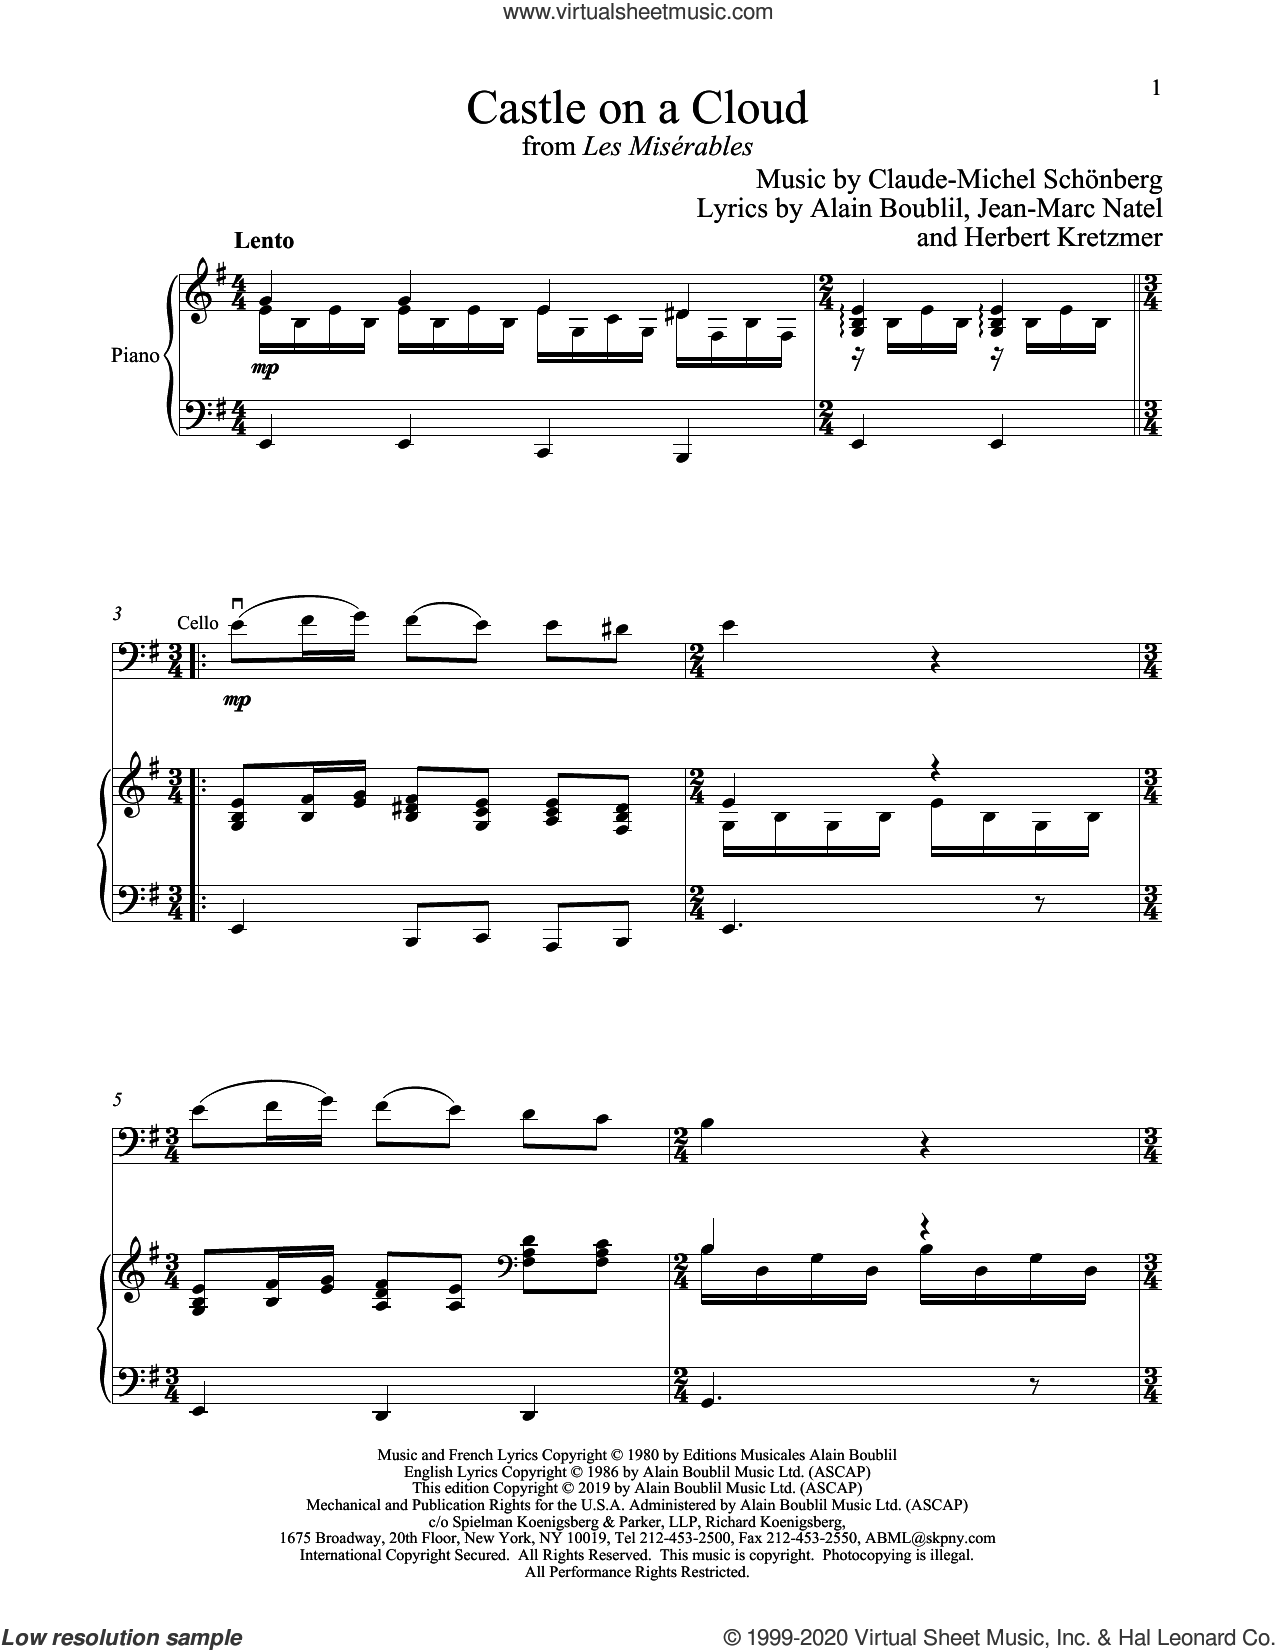 Castle On A Cloud (from Les Miserables) sheet music for cello and piano by Alain Boublil, Boublil and Schonberg, Claude-Michel Schonberg, Herbert Kretzmer and Jean-Marc Natel, intermediate skill level